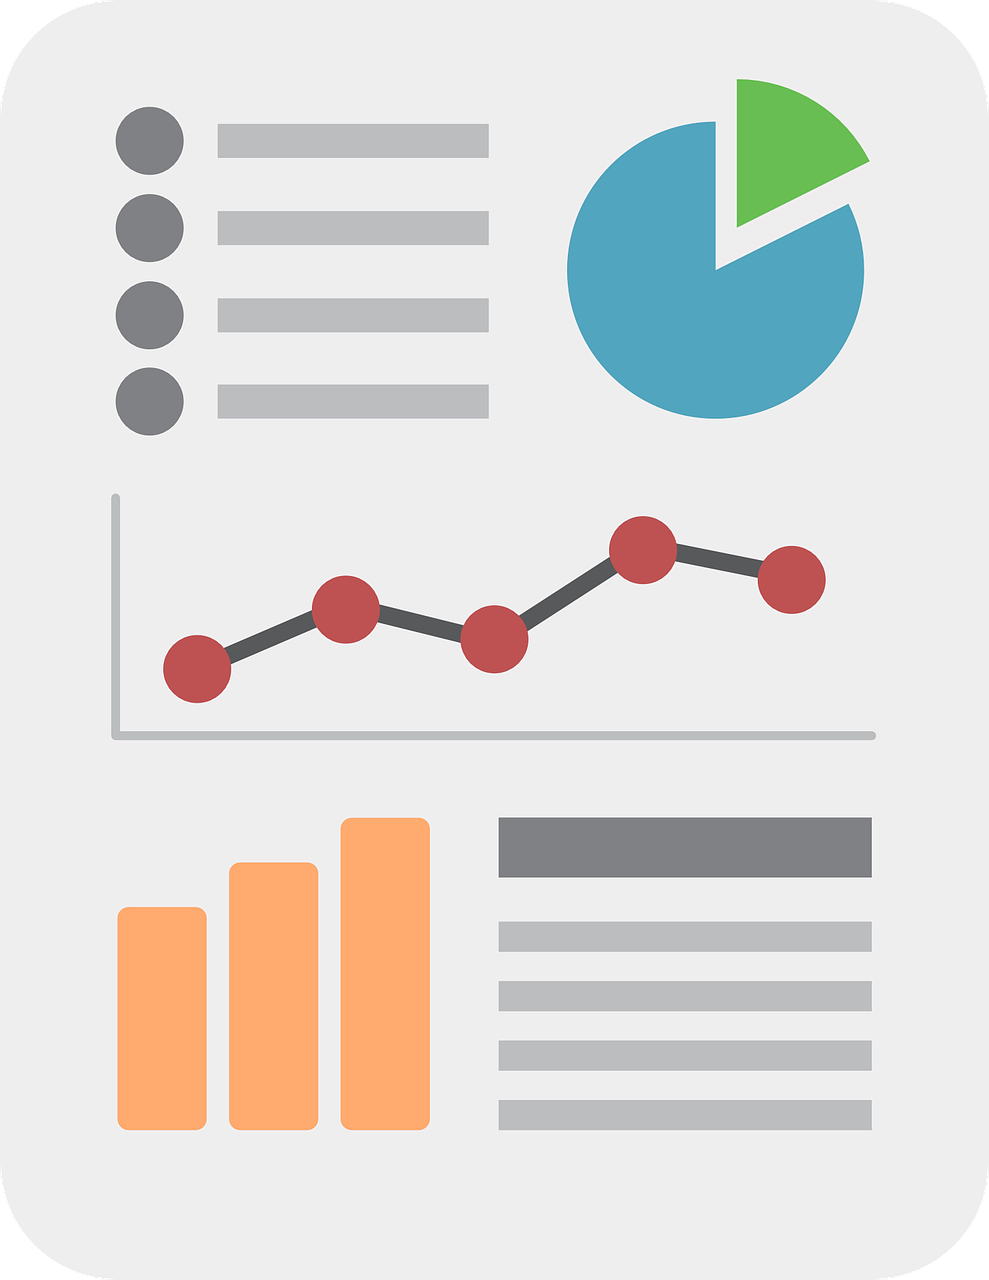 Repurpose Video Content for A Digital Marketing Strategy with Infographics